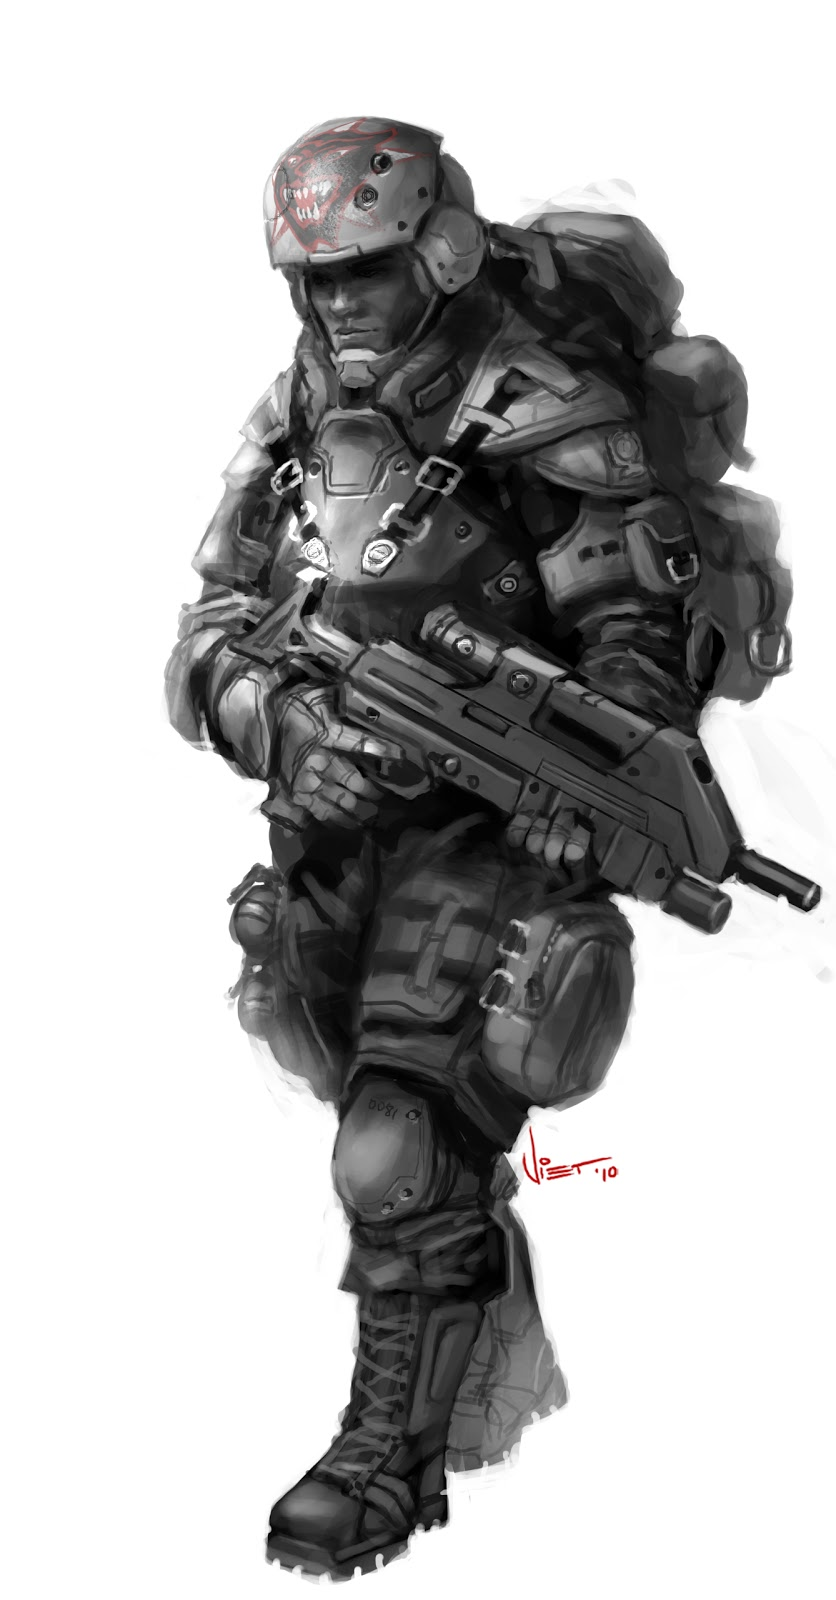 Image Result For Futuristic Military Armor Concept Art